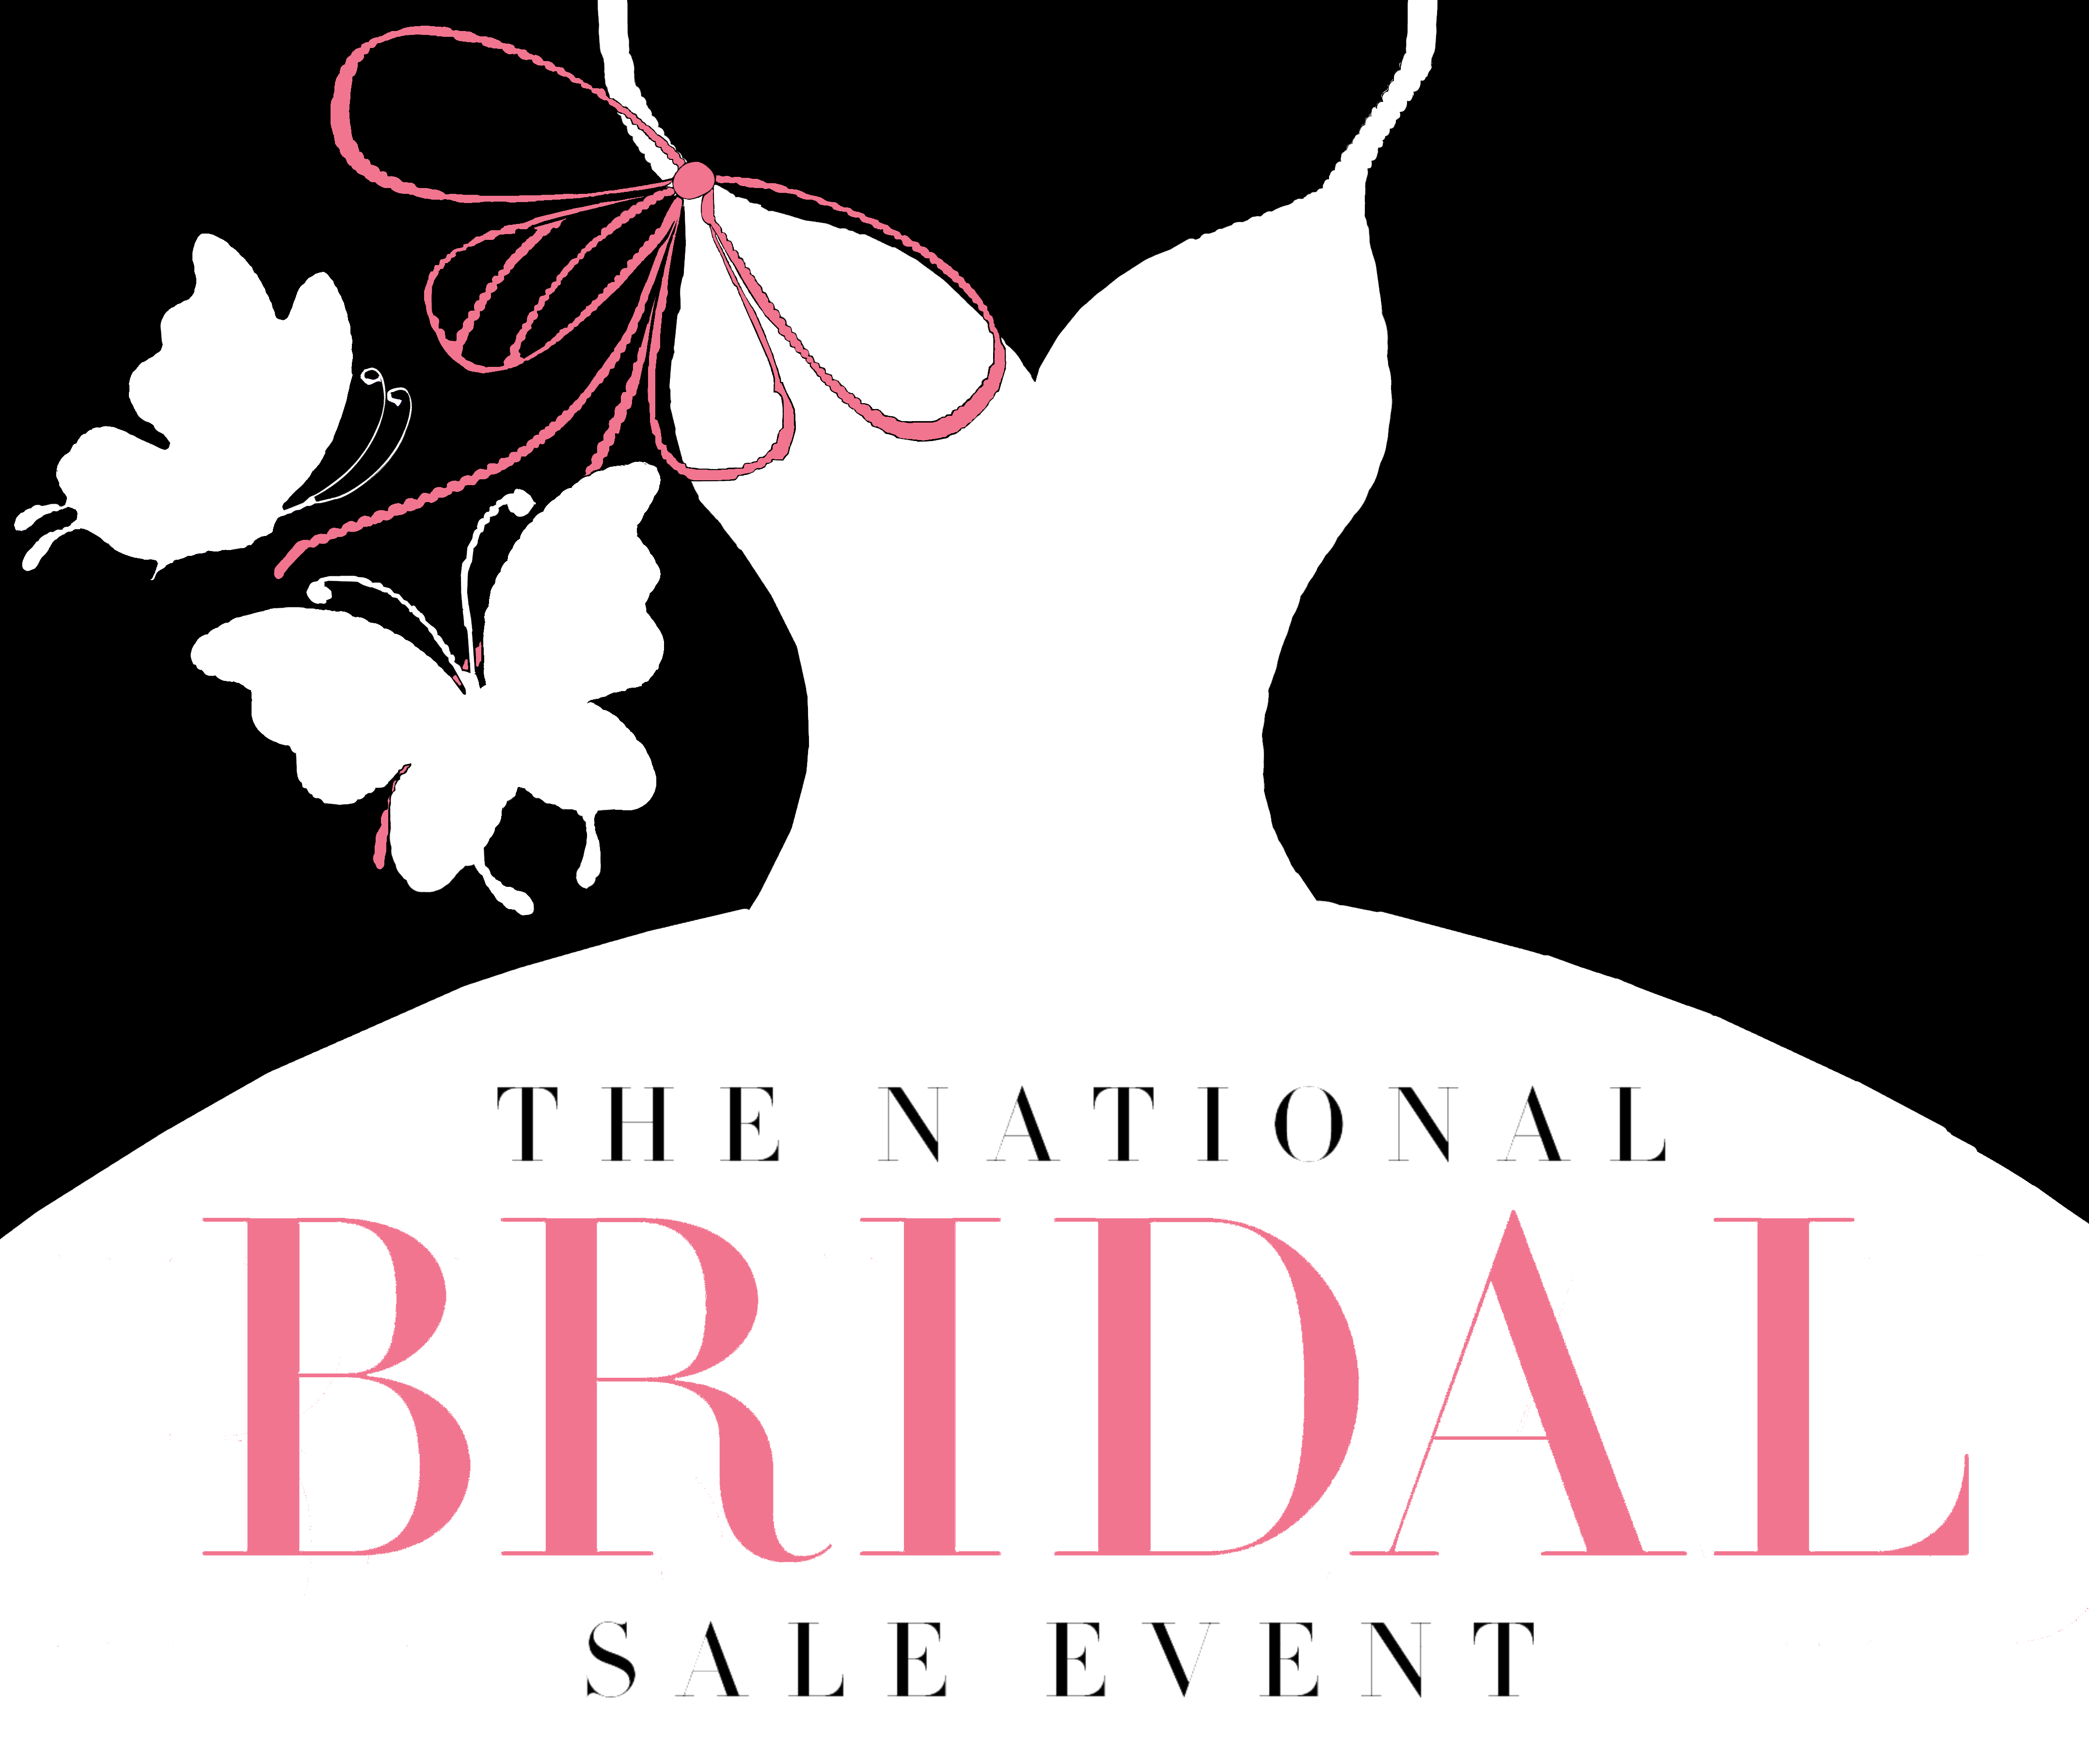 National Bridal Sale